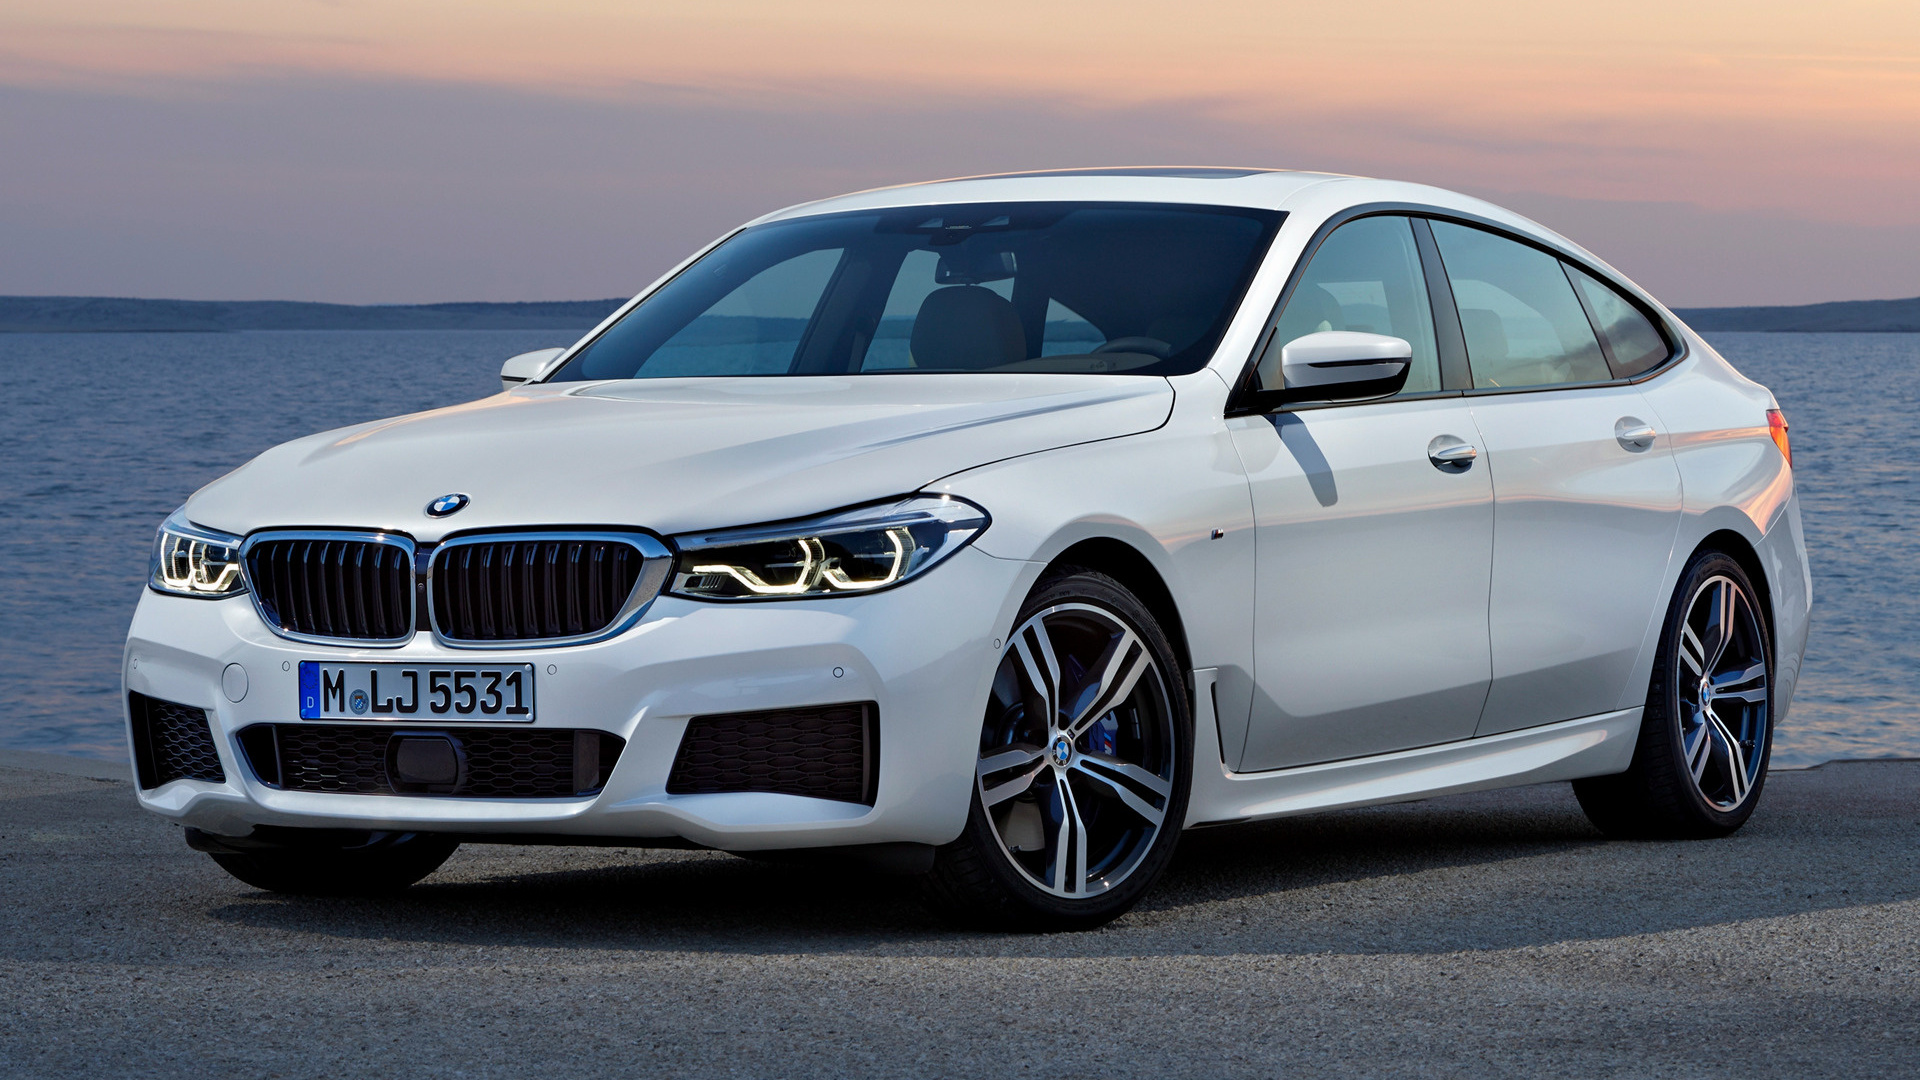 2017 BMW 6 Series Gran Turismo M Sport - Wallpapers and HD ...